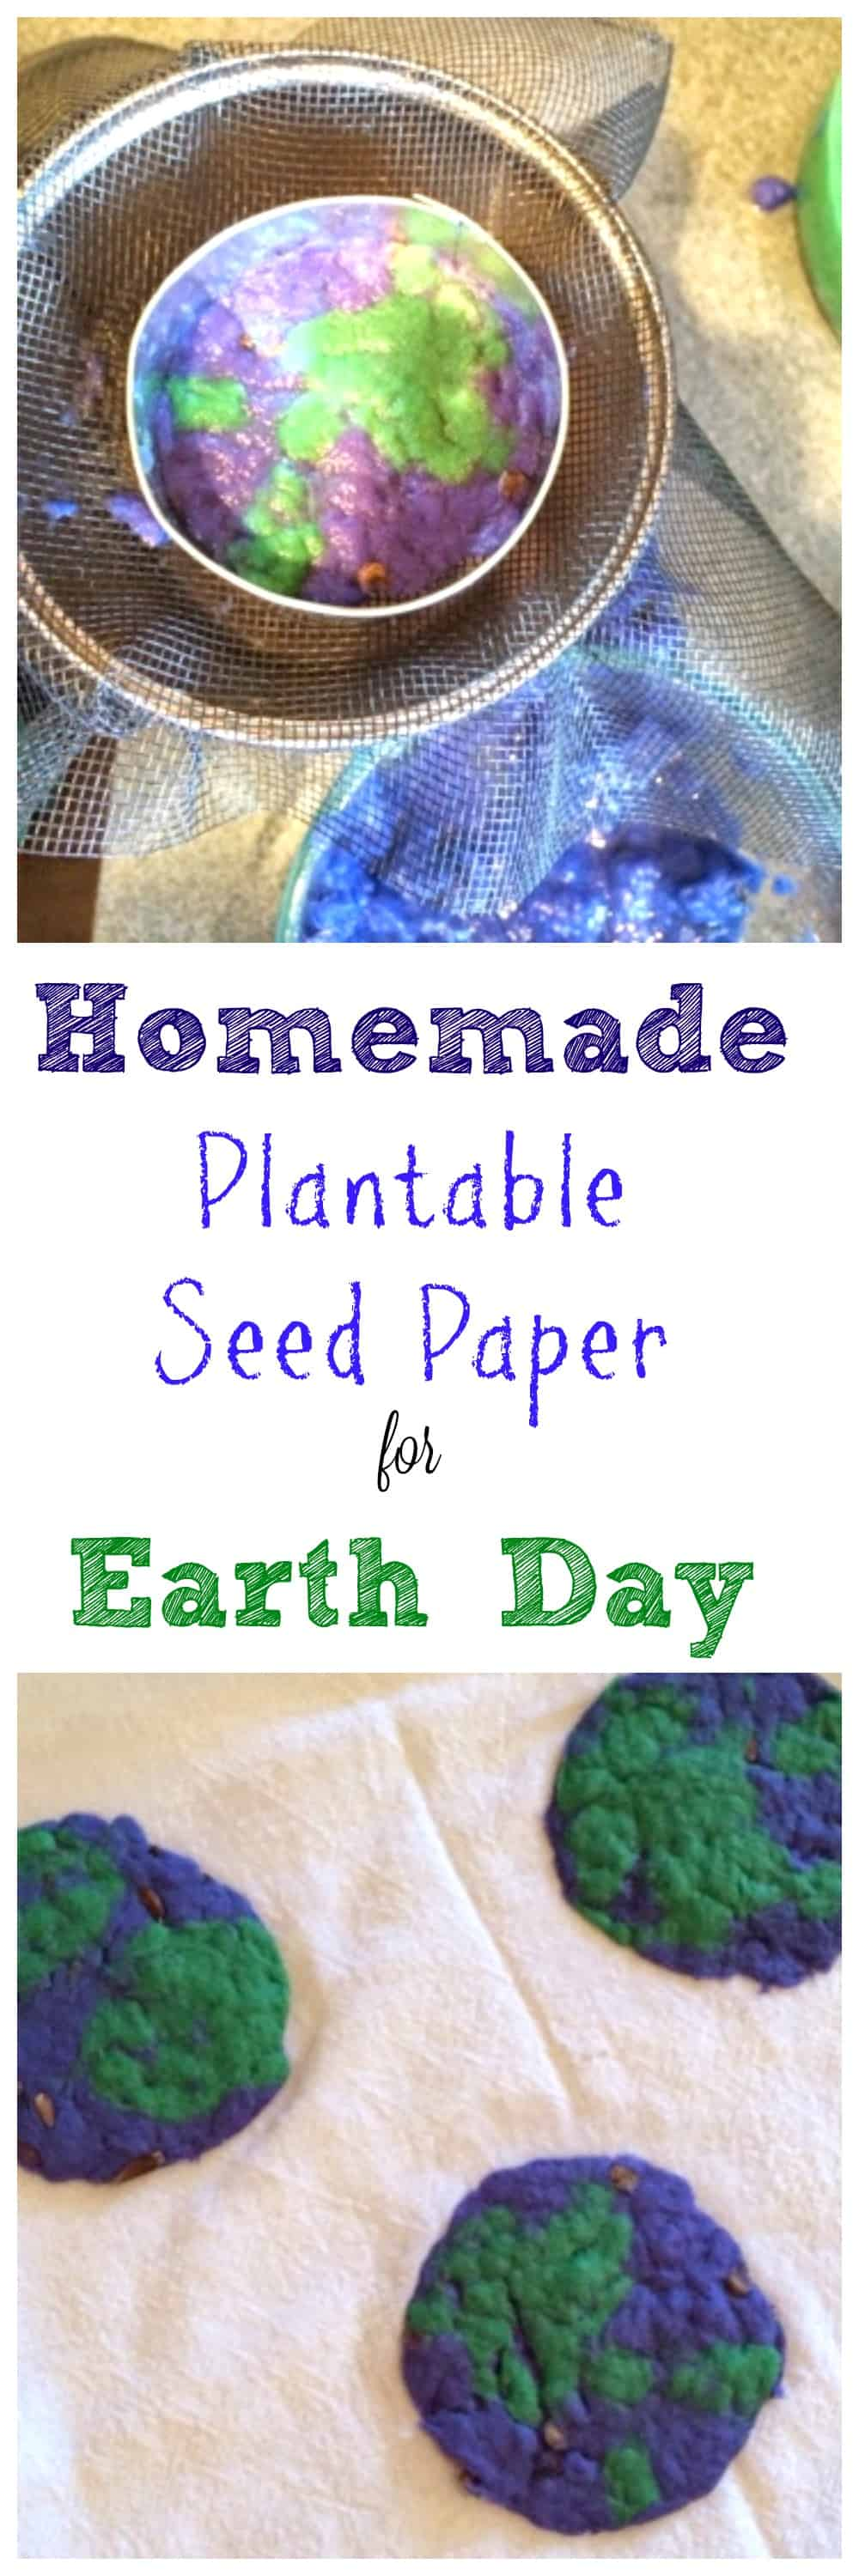 Plantable Seed Paper